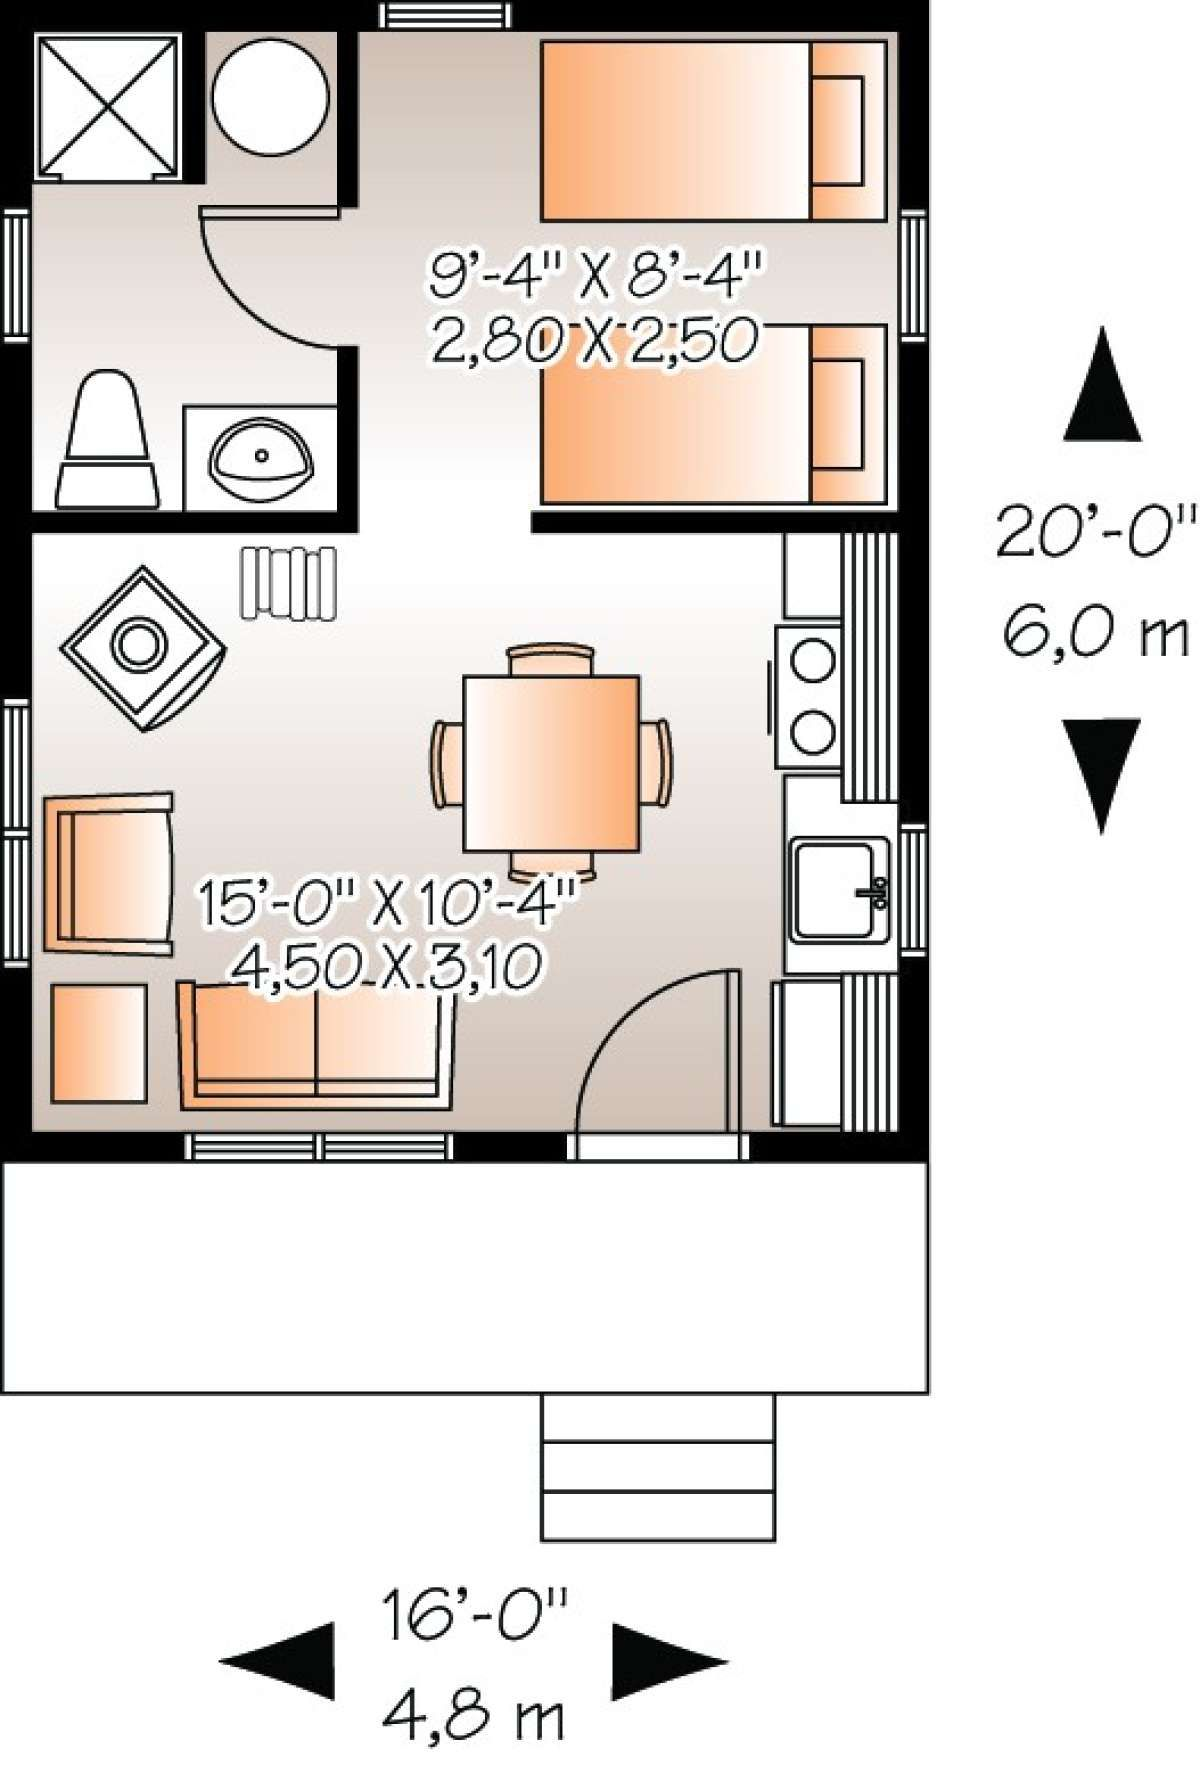 House Plan 034 00174 Small Plan 320 Square Feet 1 Bedroom 1 Bathroom In 2020 Tiny House Layout House Plans Cabin House Plans